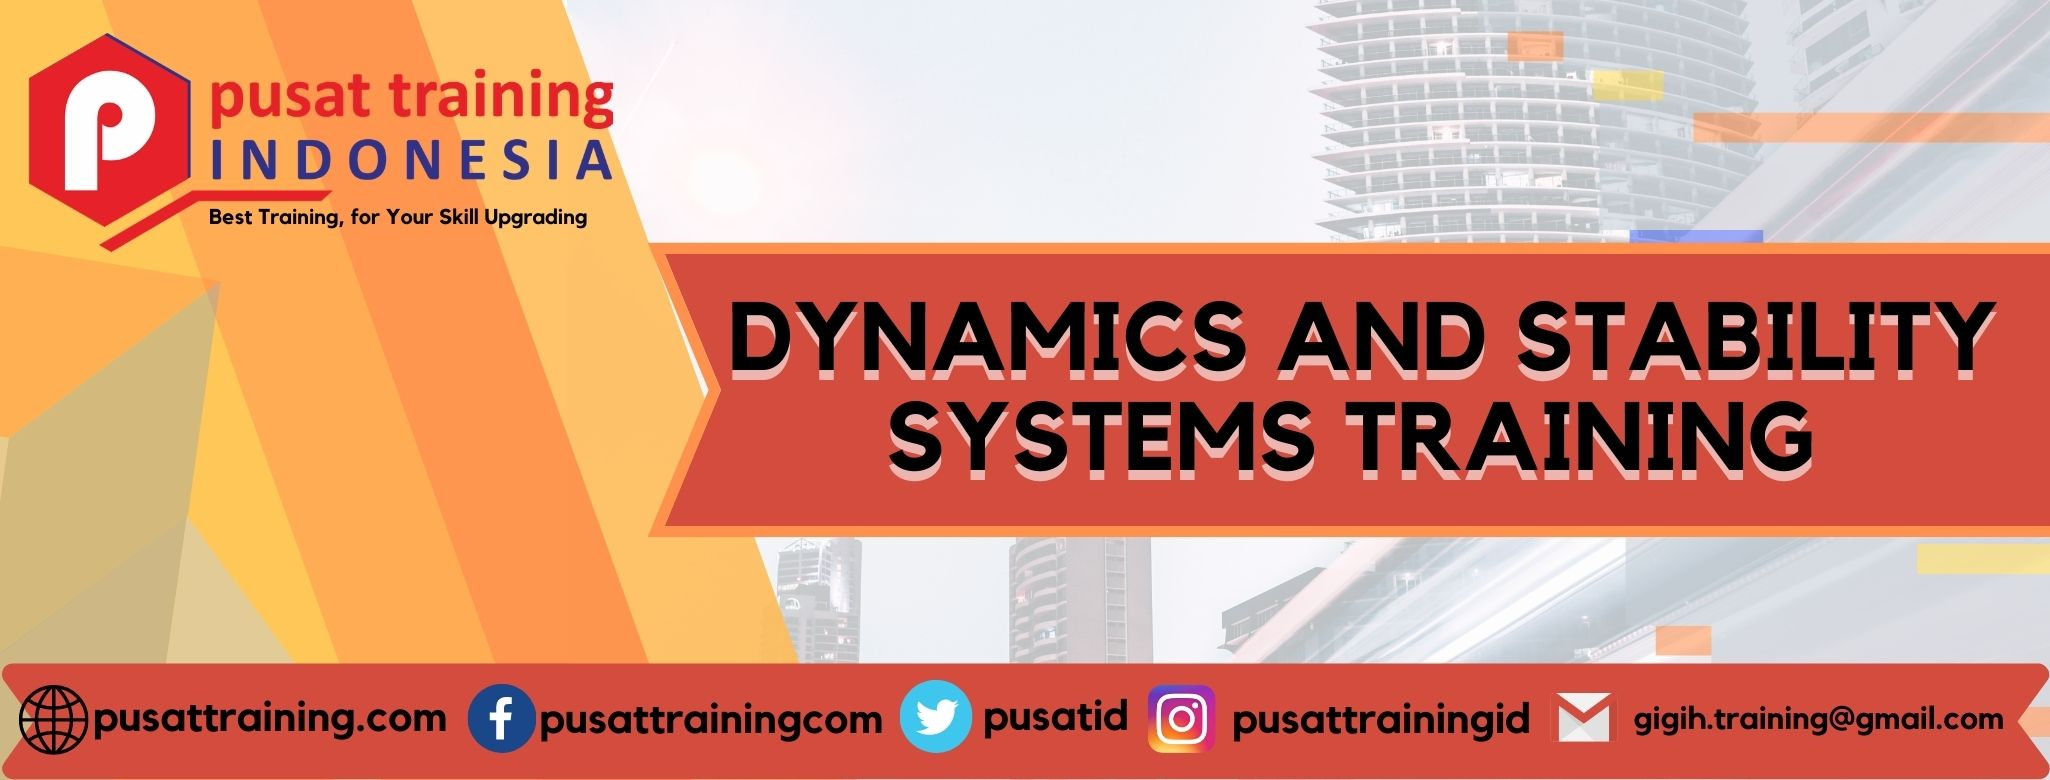 DYNAMICS AND STABILITY SYSTEMS TRAINING